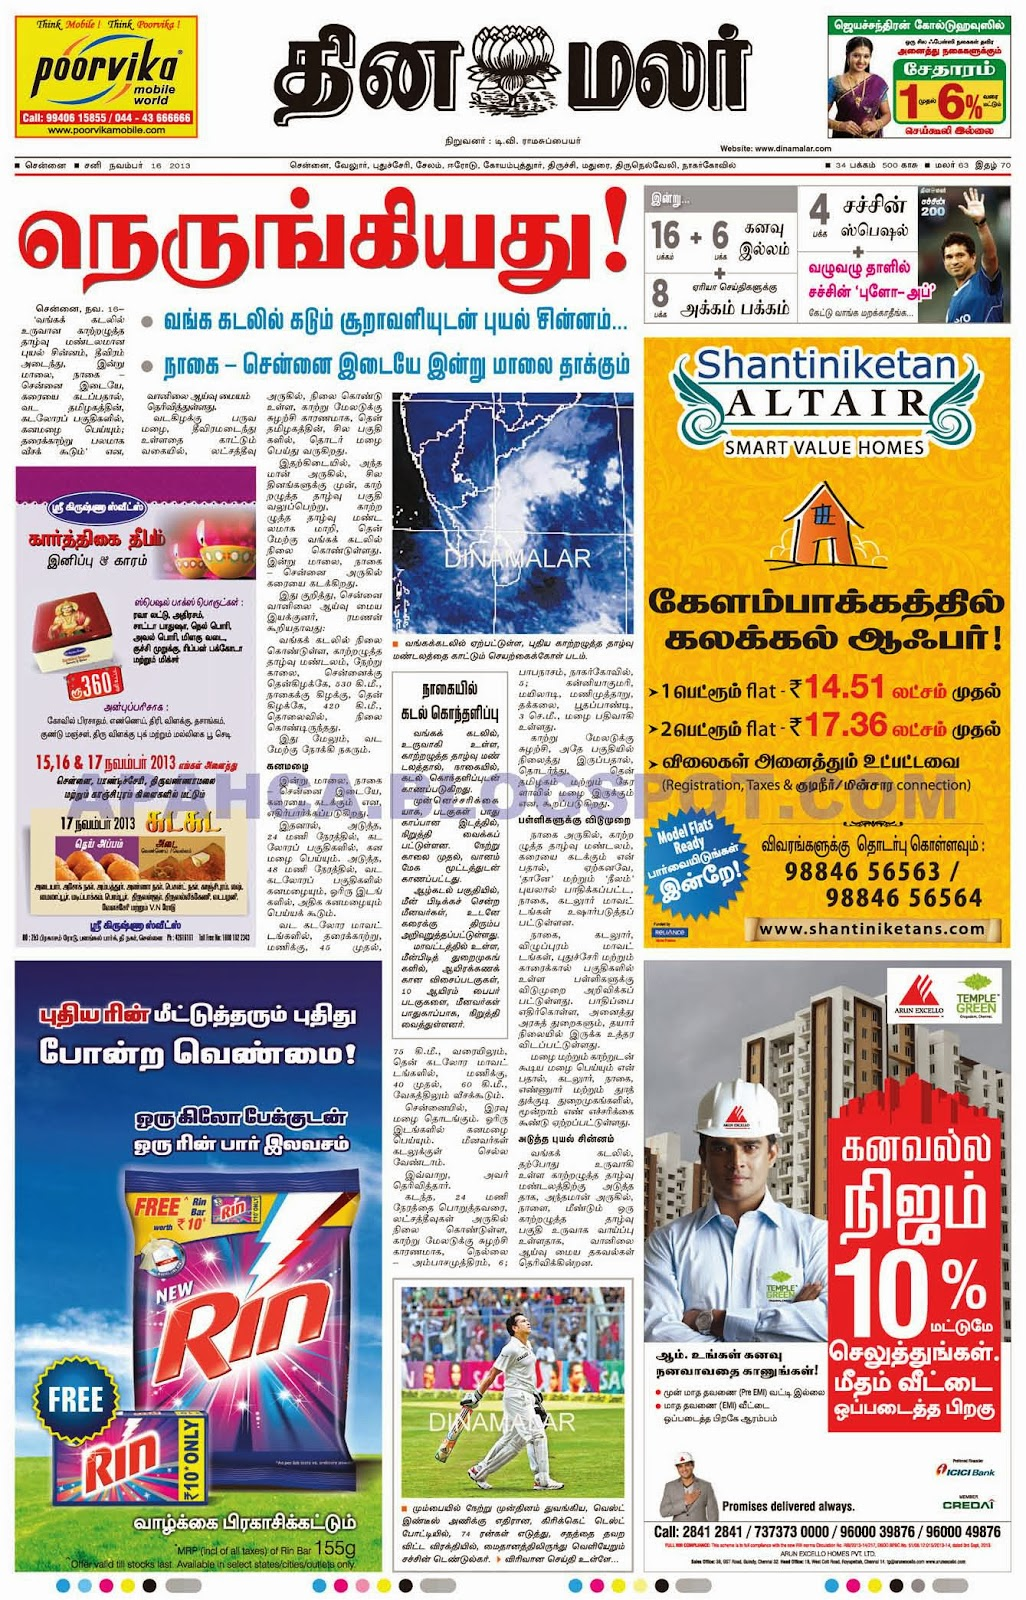 dinamalar e paper Dinamalar-tamilblogspotin is not yet effective in its seo tactics: it has google pr 0 it may also be penalized or lacking valuable inbound links.